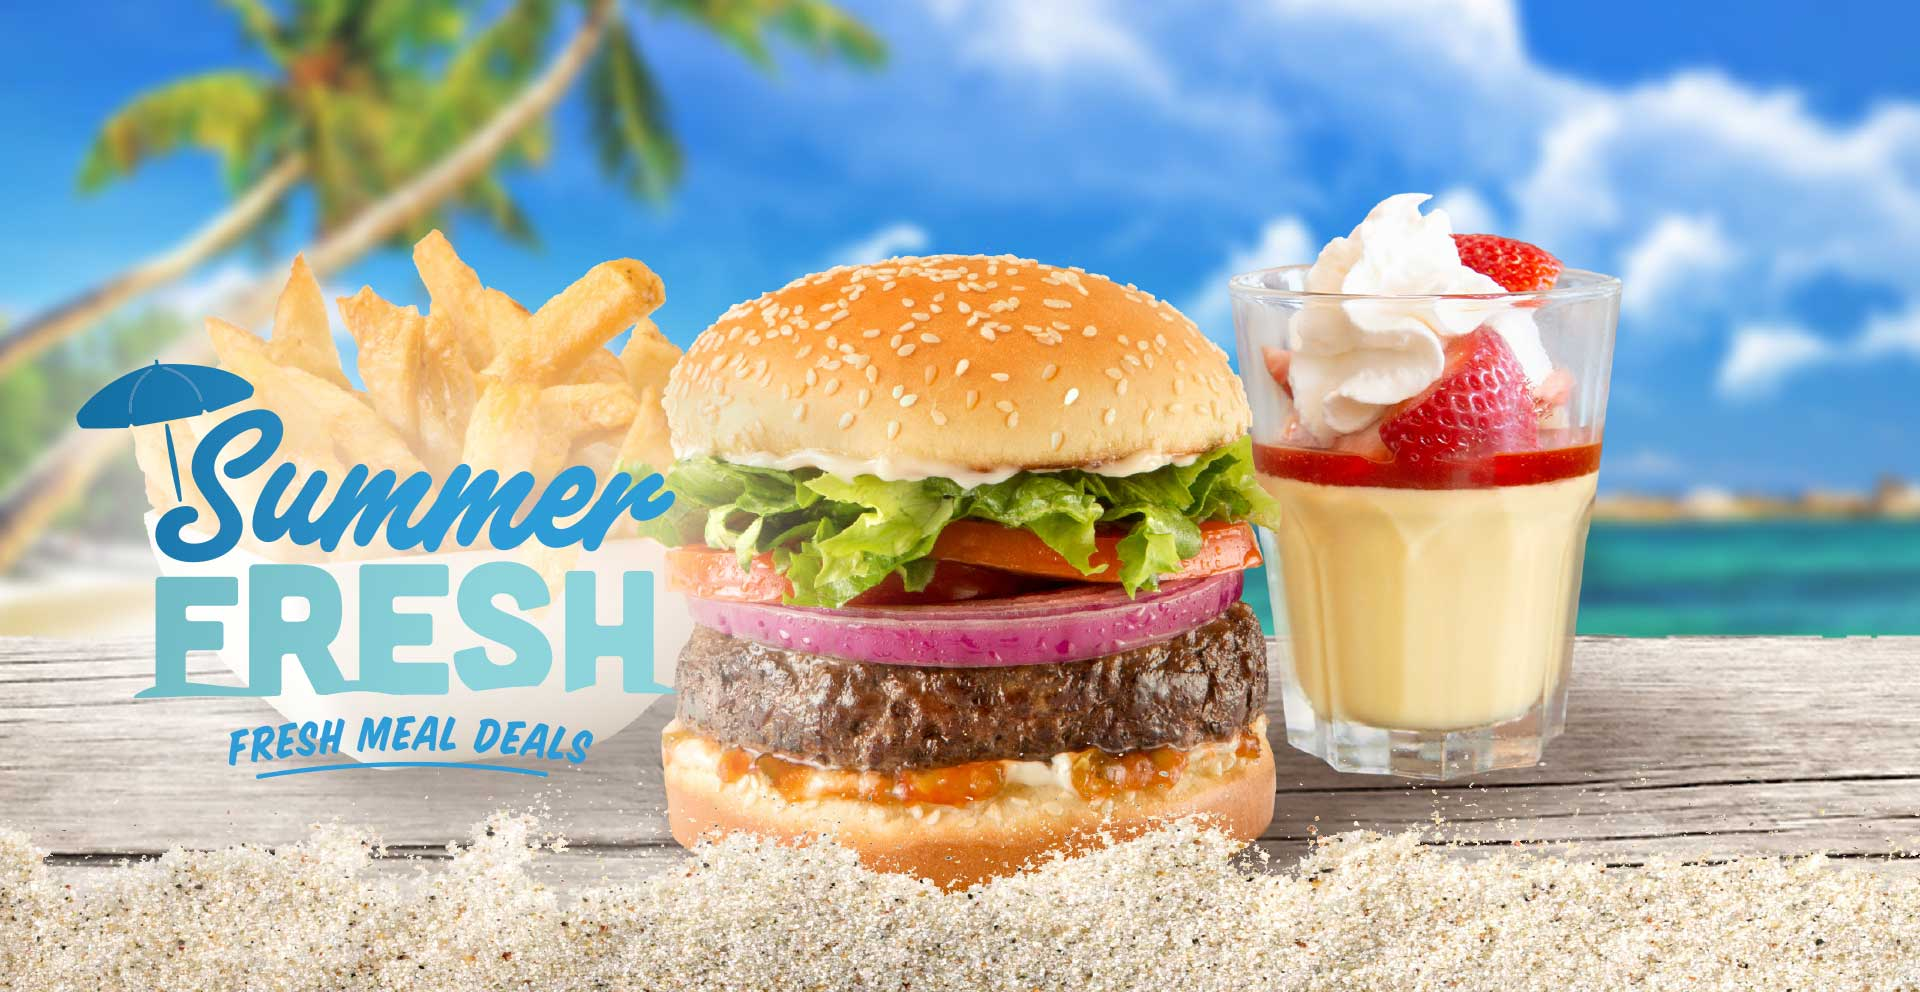 Choose from a Deluxe Burger to hand-battered Chicken Tenders to beer-battered Fish & Chips. All with fresh-cut fries and fresh berry creamsicle parfait. See participating locations for menu and pricing.